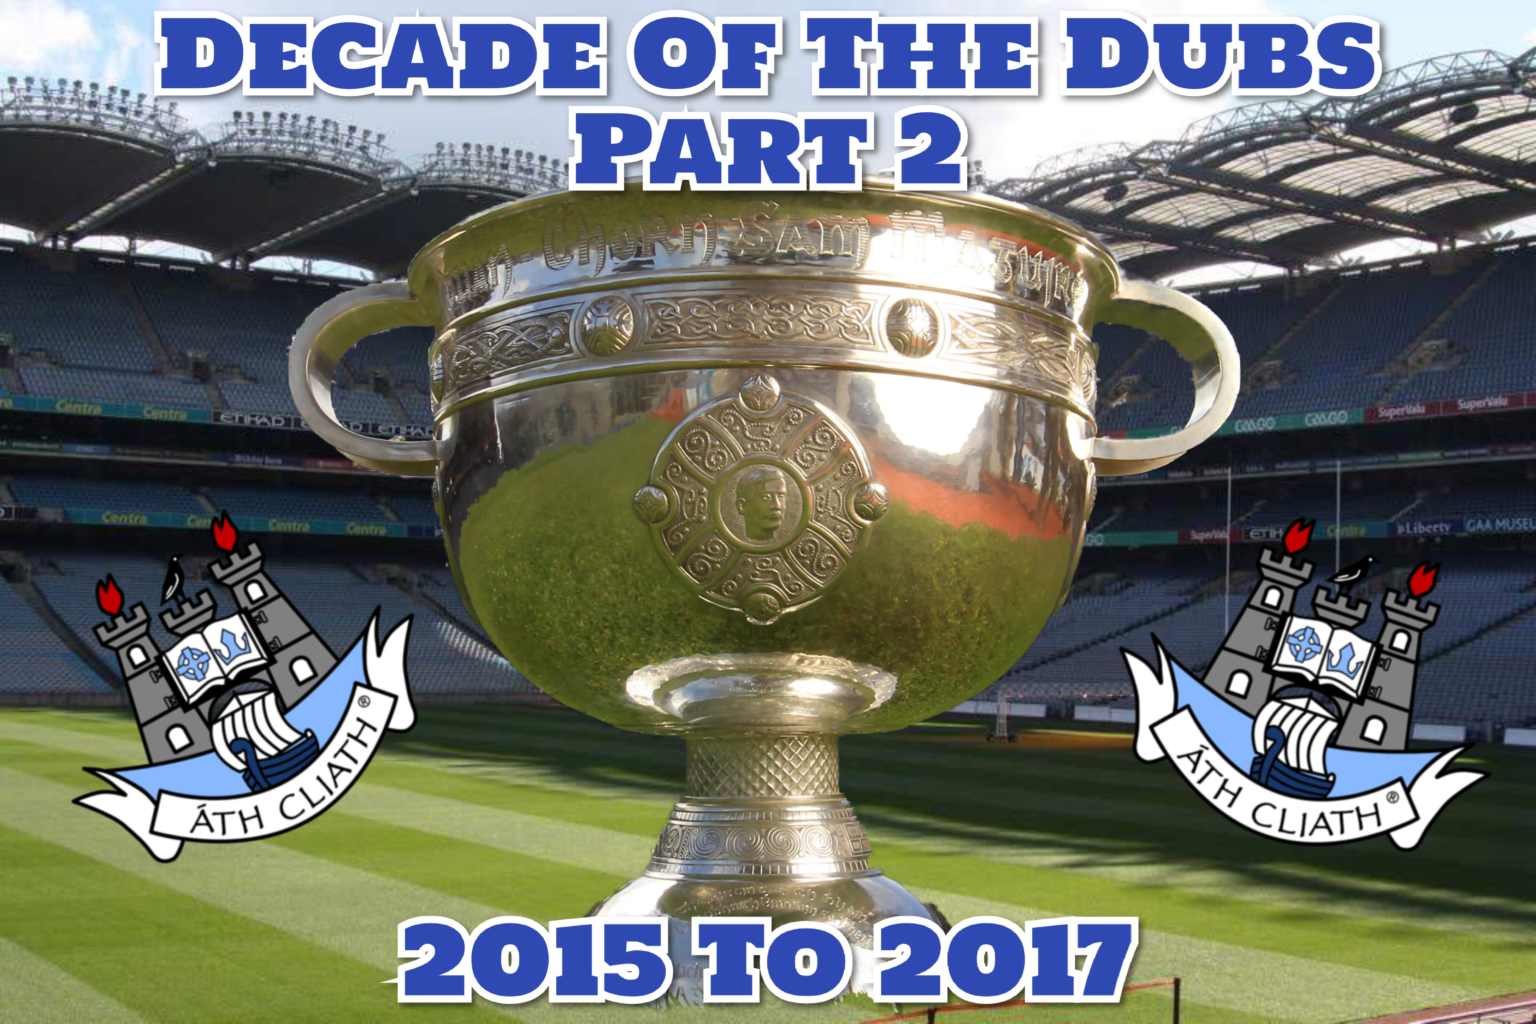 Poster with the text Decade of the Dubs Part two and 2015 to 2017